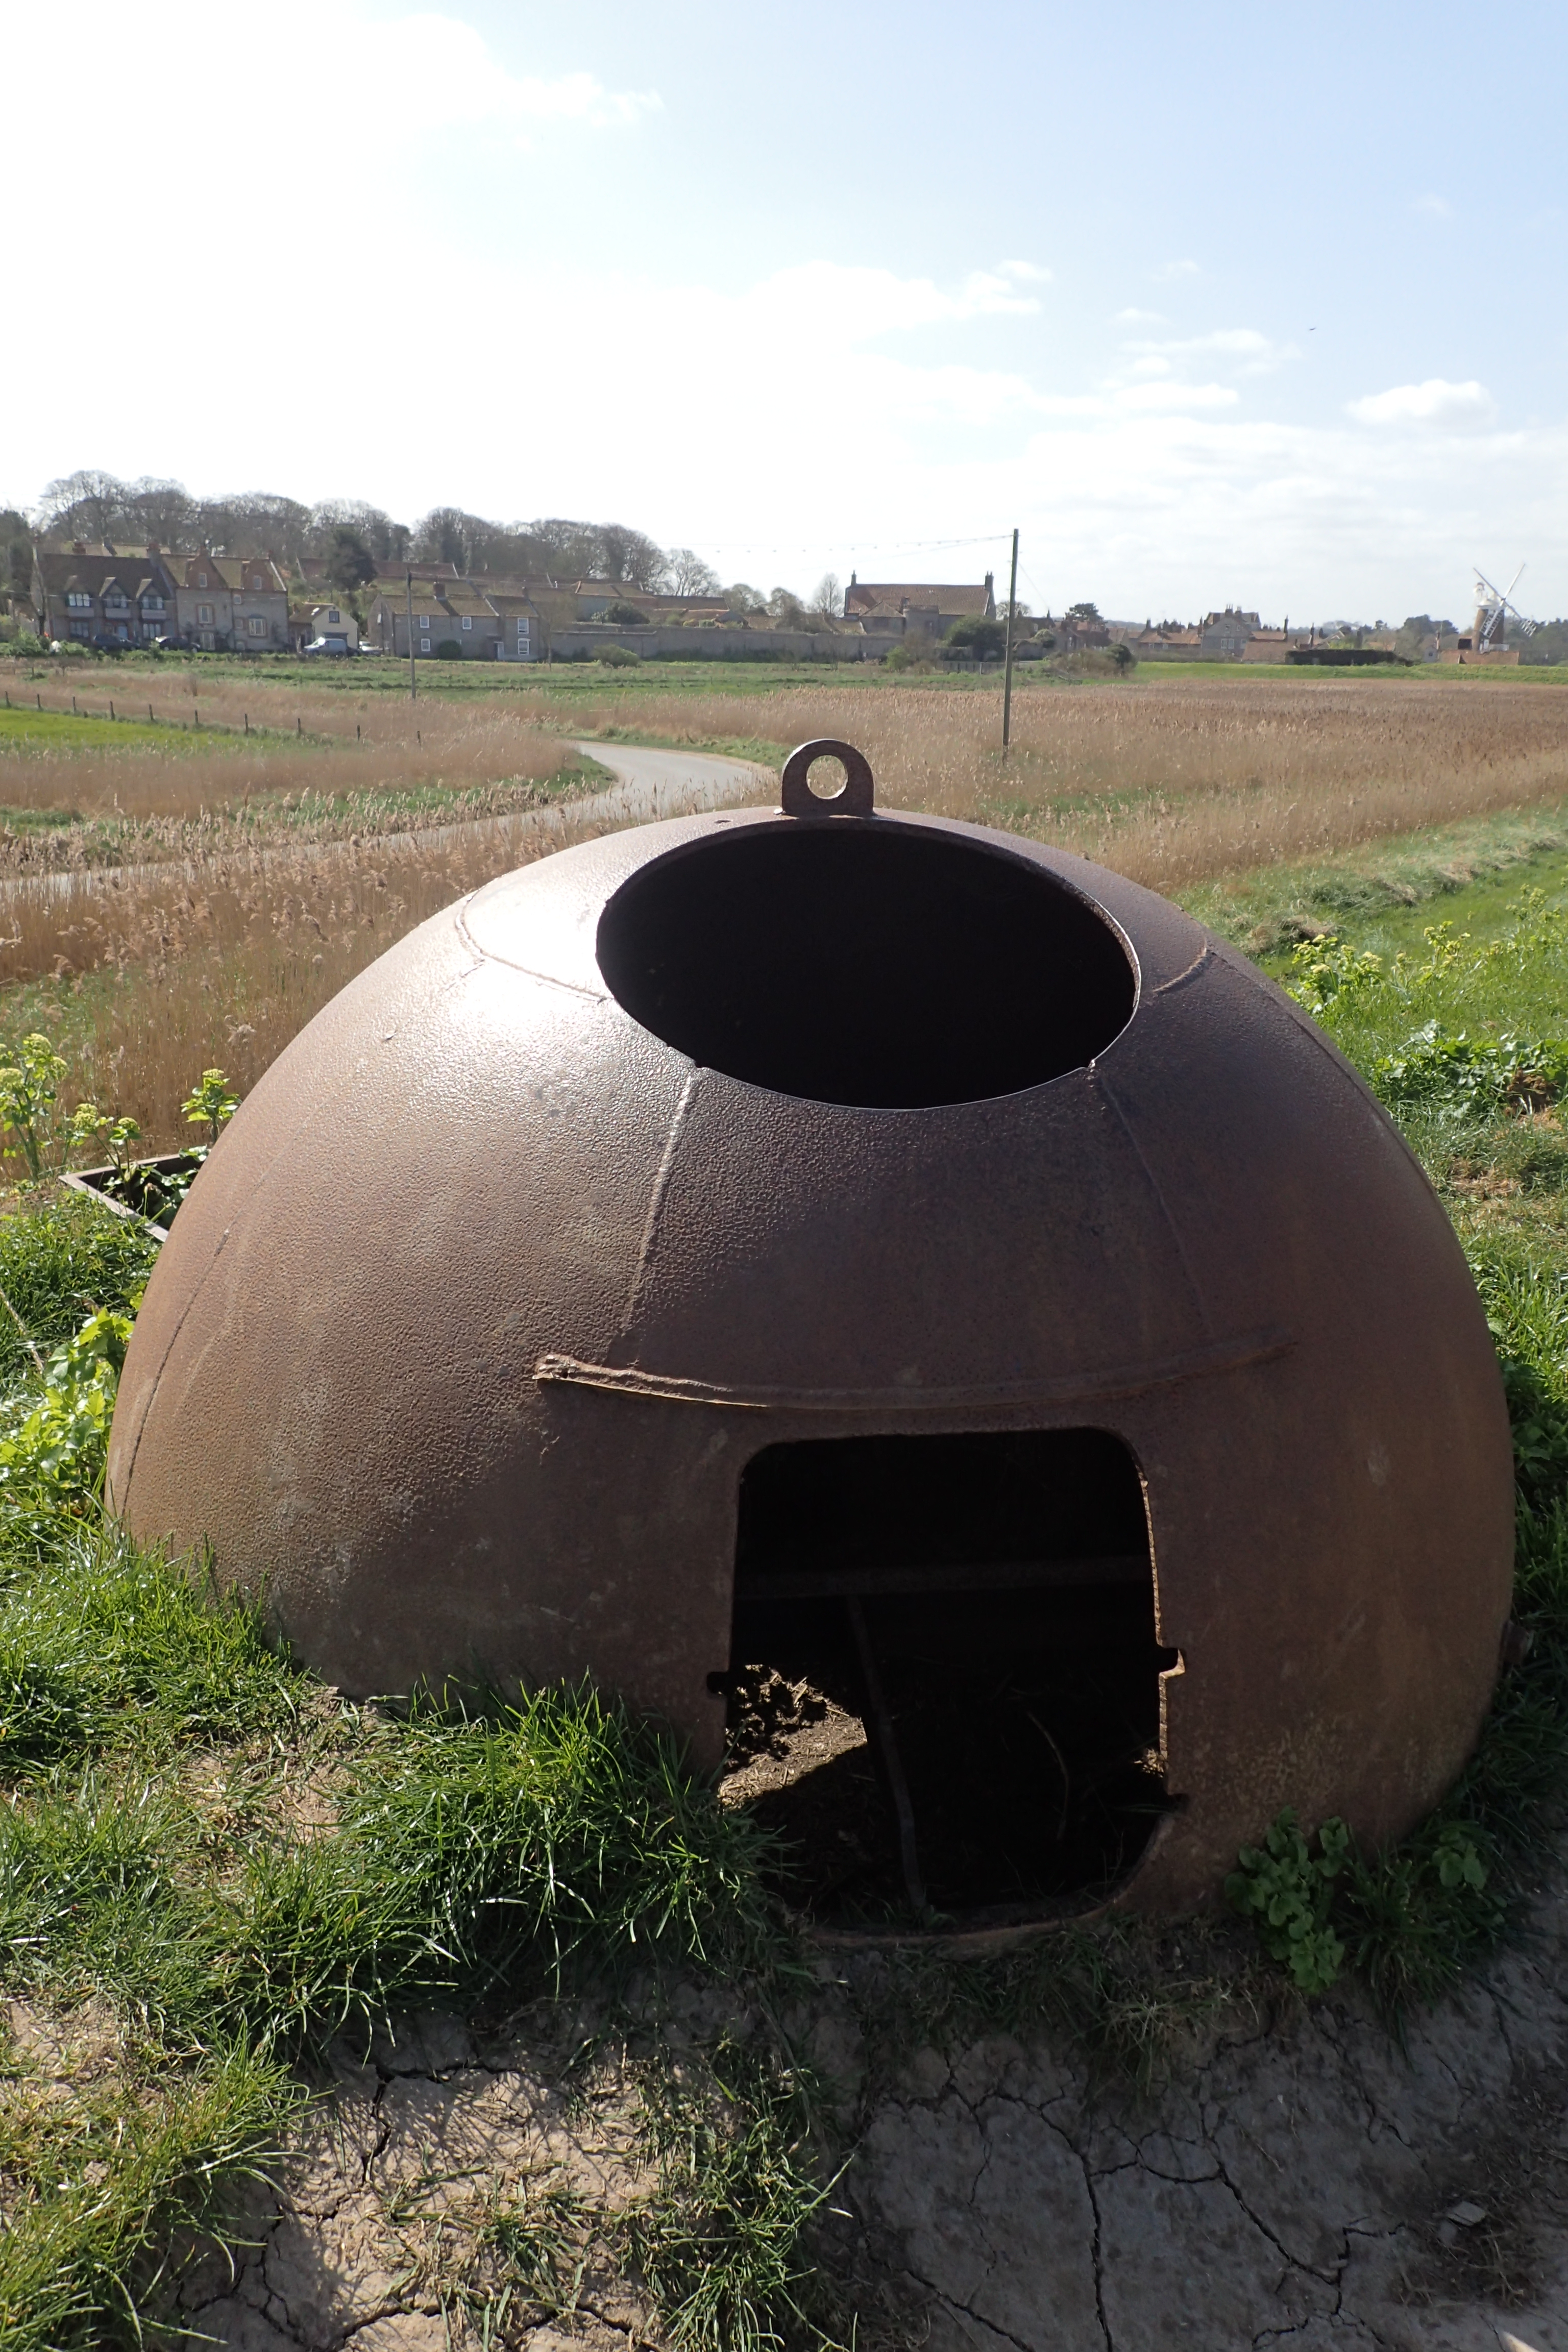 Remains of an Allan Williams gun turret. 199 of these were made during World War II